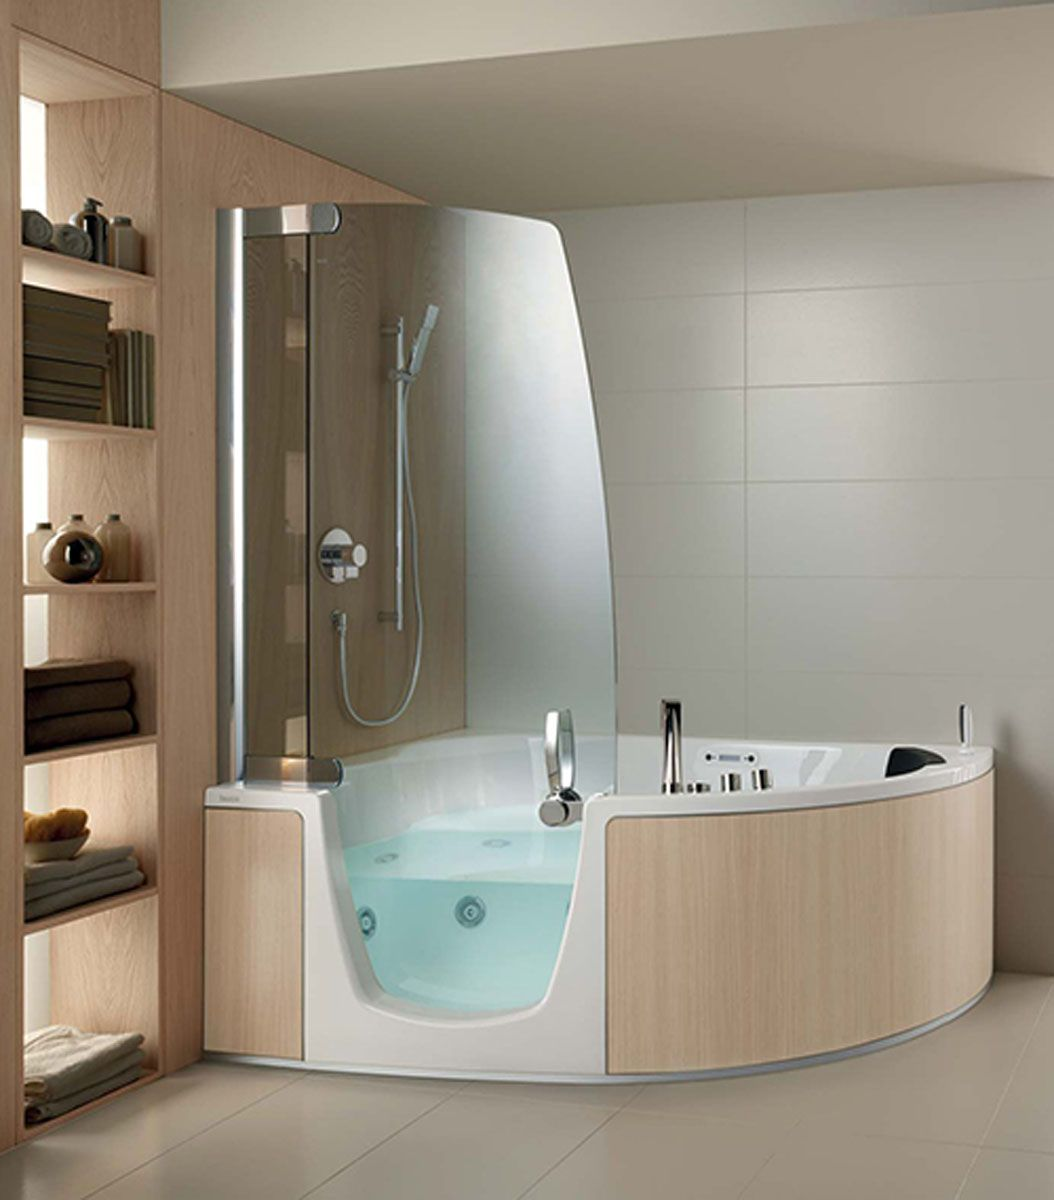 small corner bathtub with shower. Small Corner Bathtub with Shower  Hot Tubs Jacuzzis Pinterest